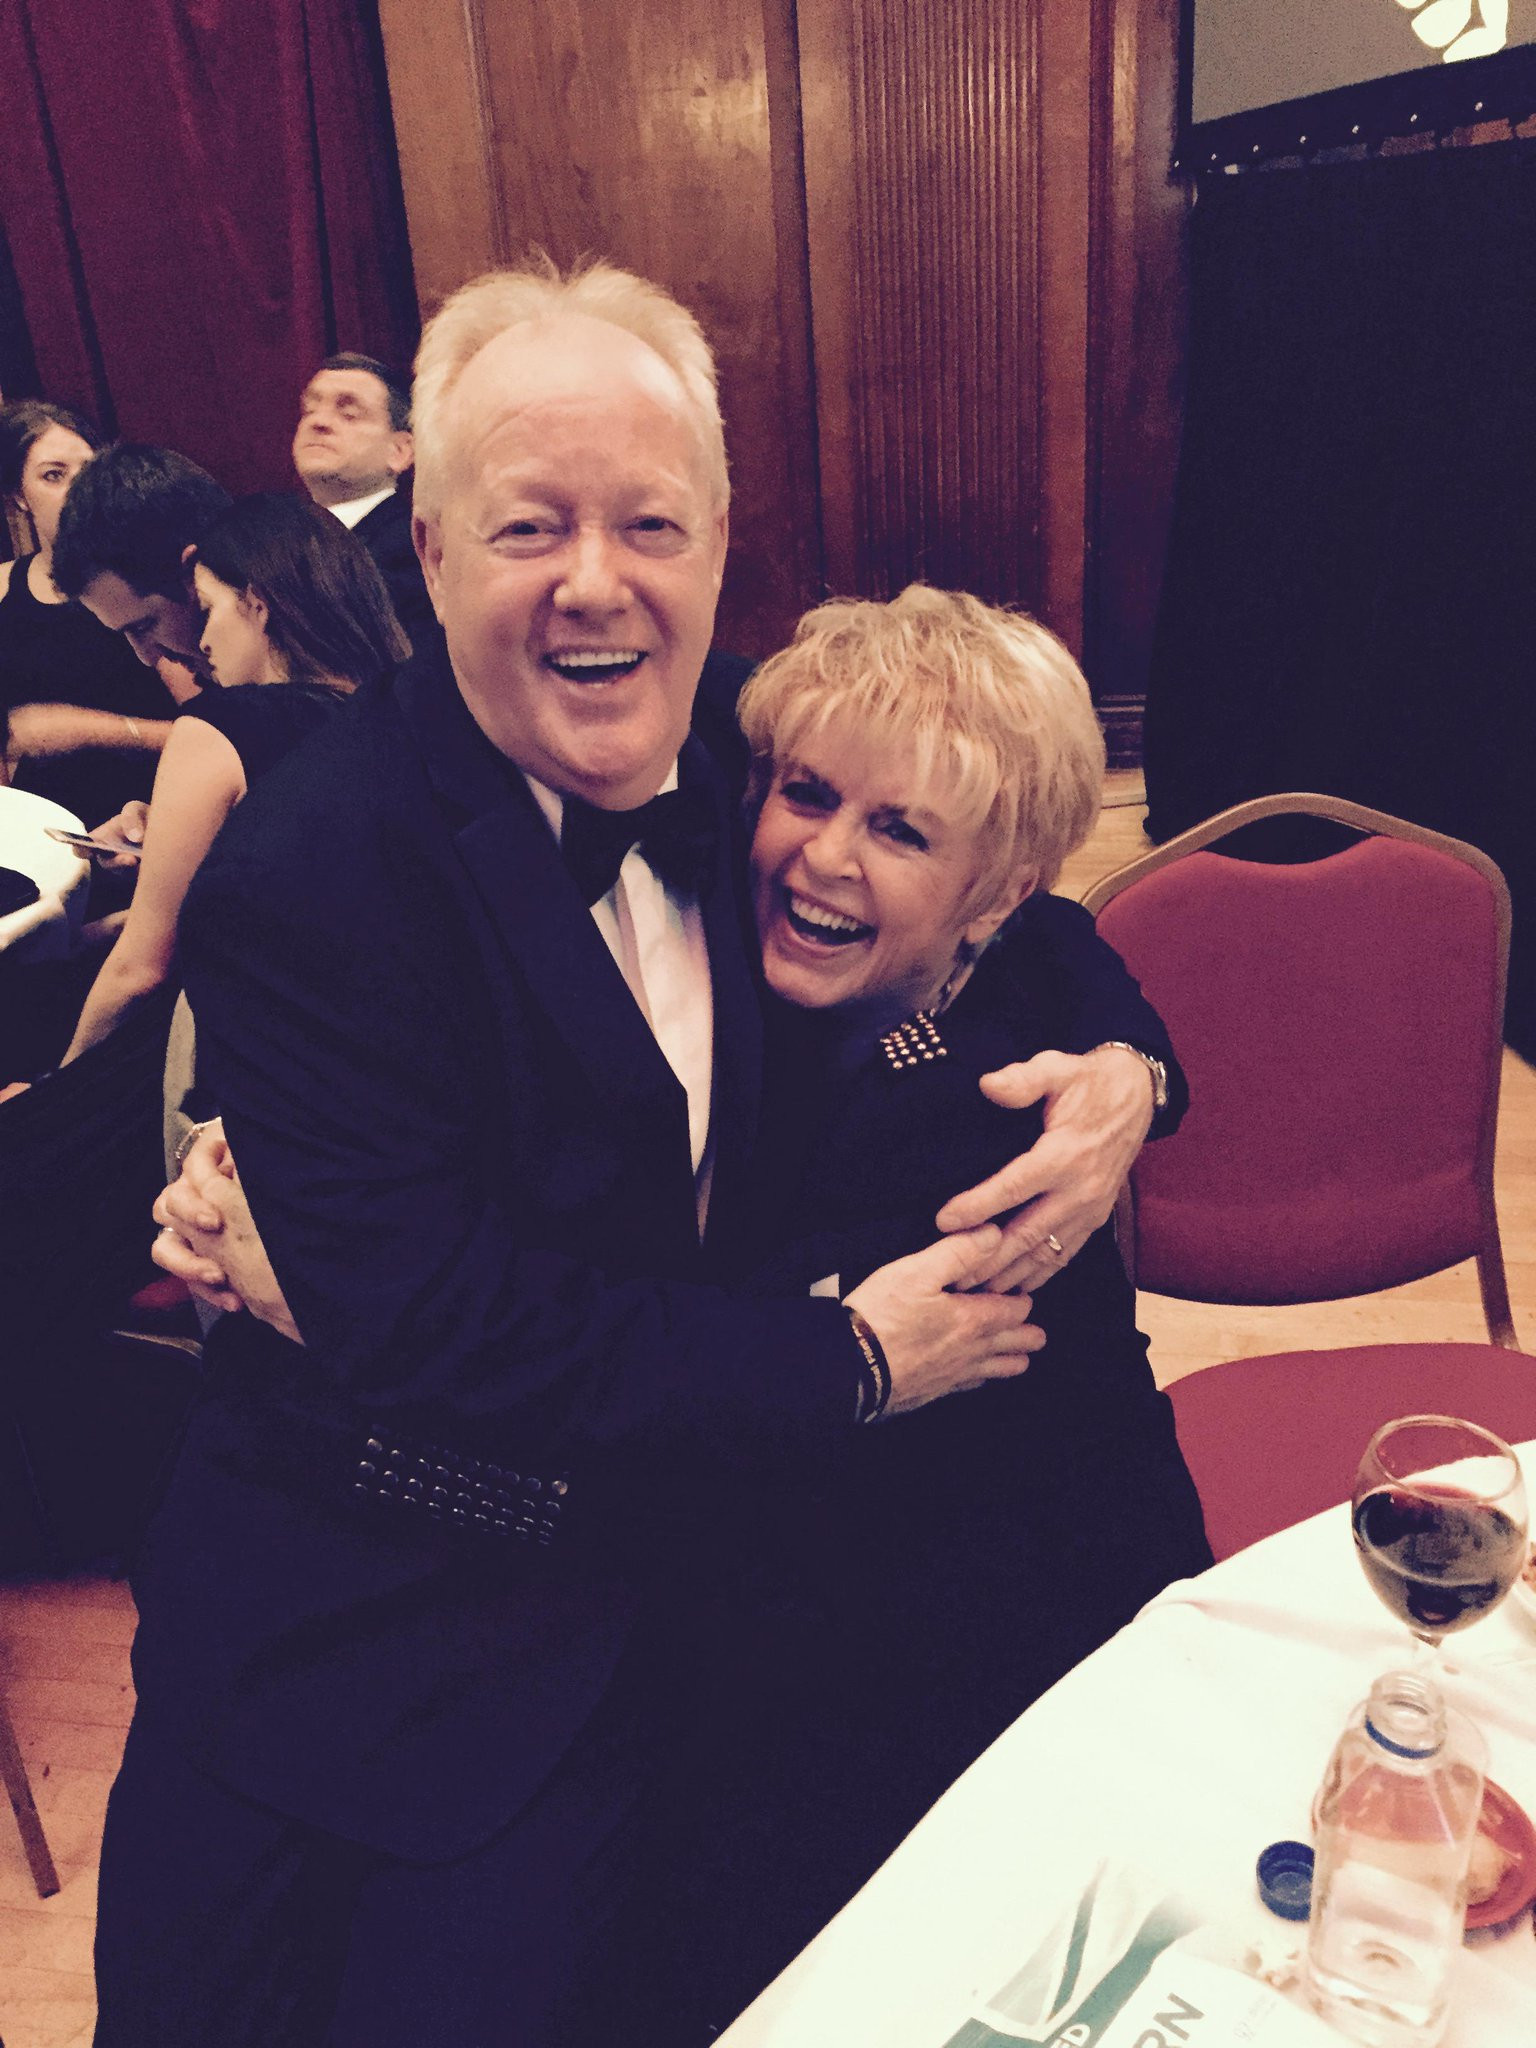 At NFA. She's so lovely - Gloria cuddly Hunniford http://t.co/IwJVkGa2zS